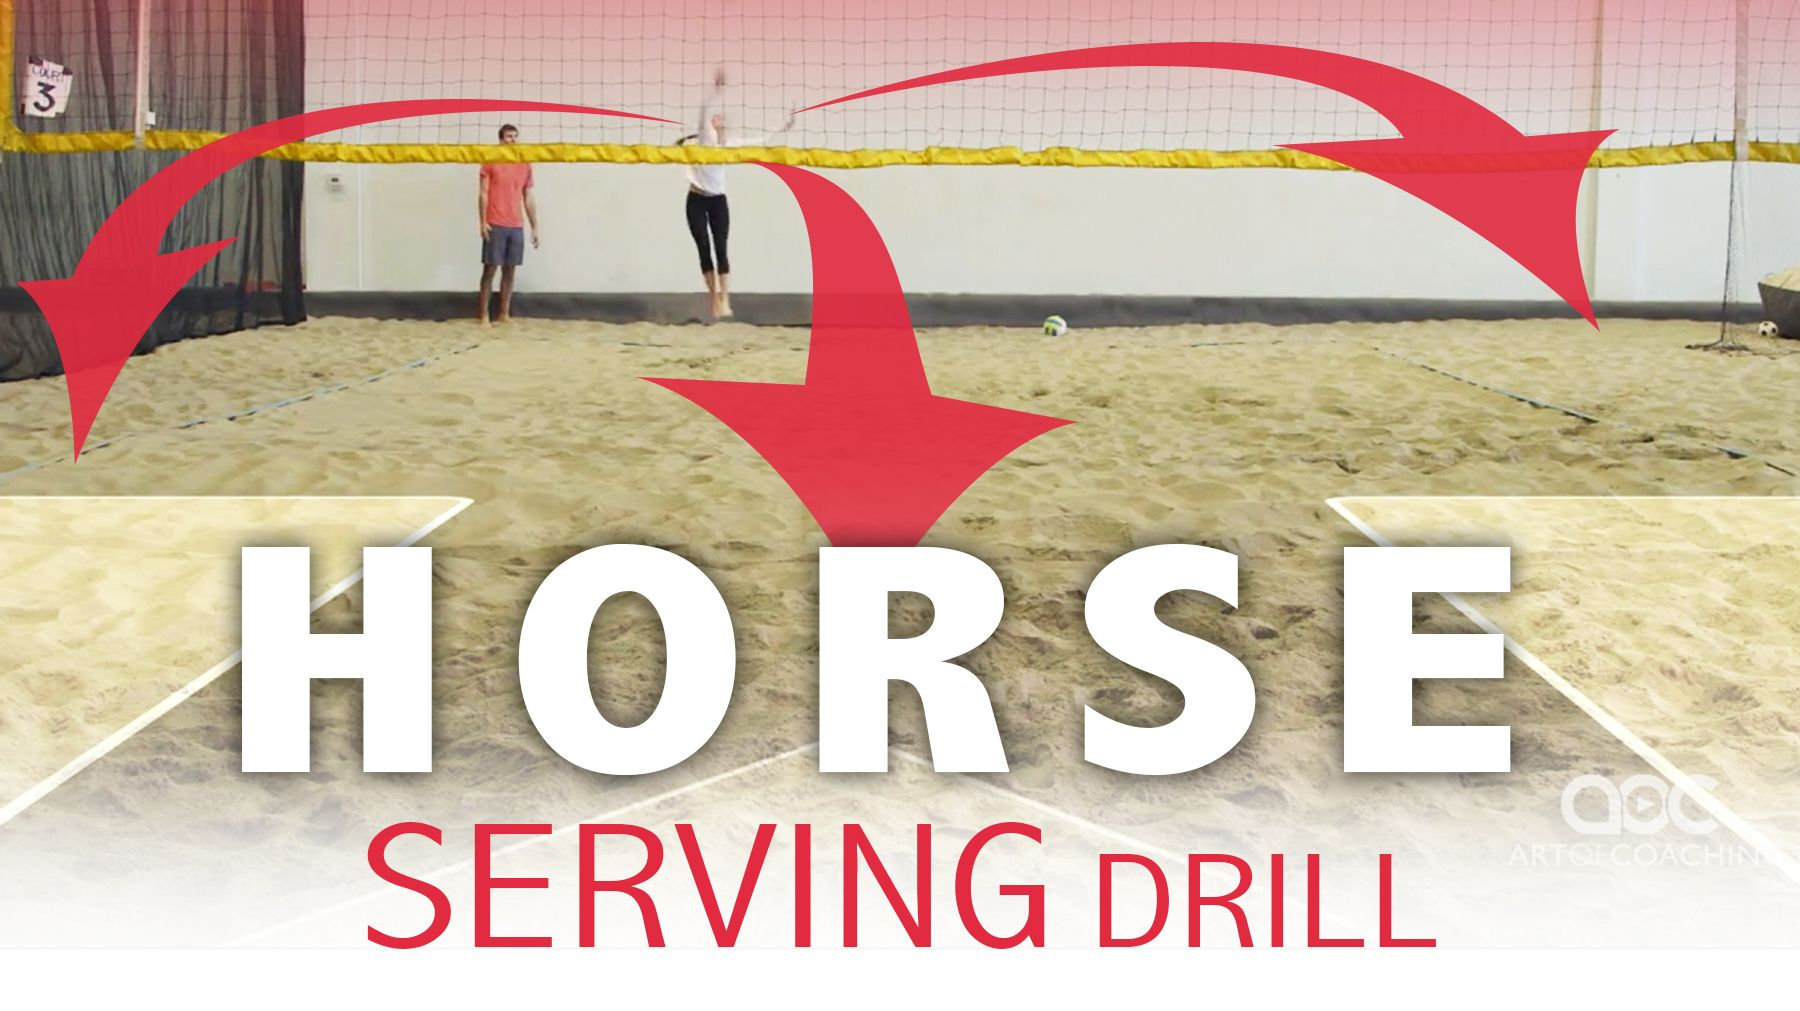 Horse Serving Drill For Sand Indoor Coaching Volleyball Volleyball Volleyball Training